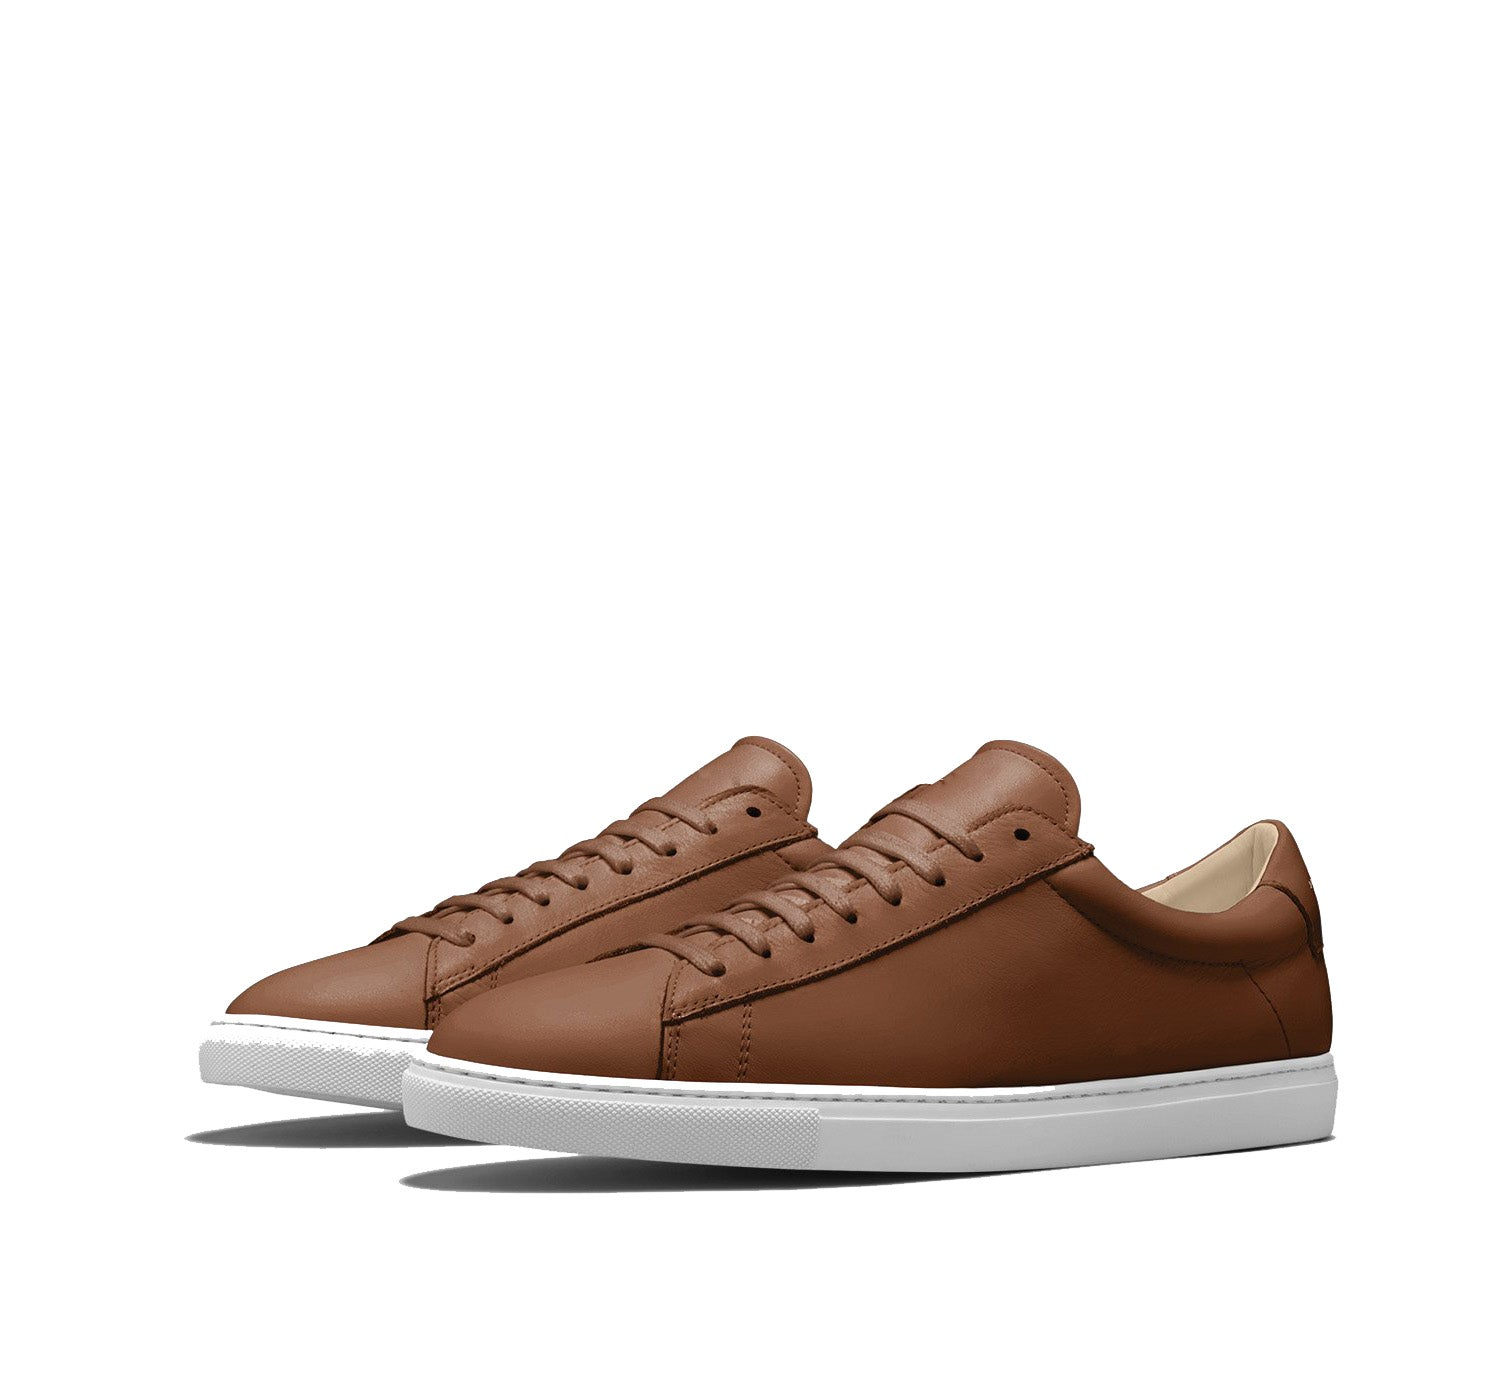 Brown Tan Leather Low Top Lace Up Sneaker for Men. White Comfortable Cup Sole.